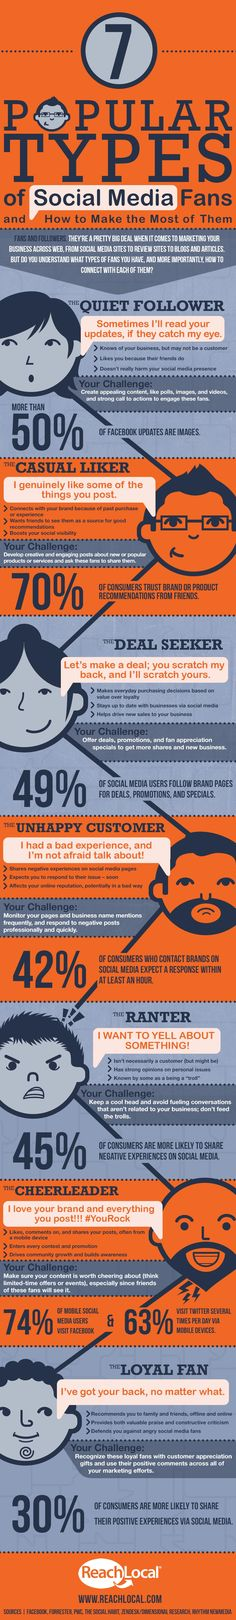 Social Media - Seven Types of Social Media Fans and How to Engage With Them. #Infographic #infografia #SocialMedia